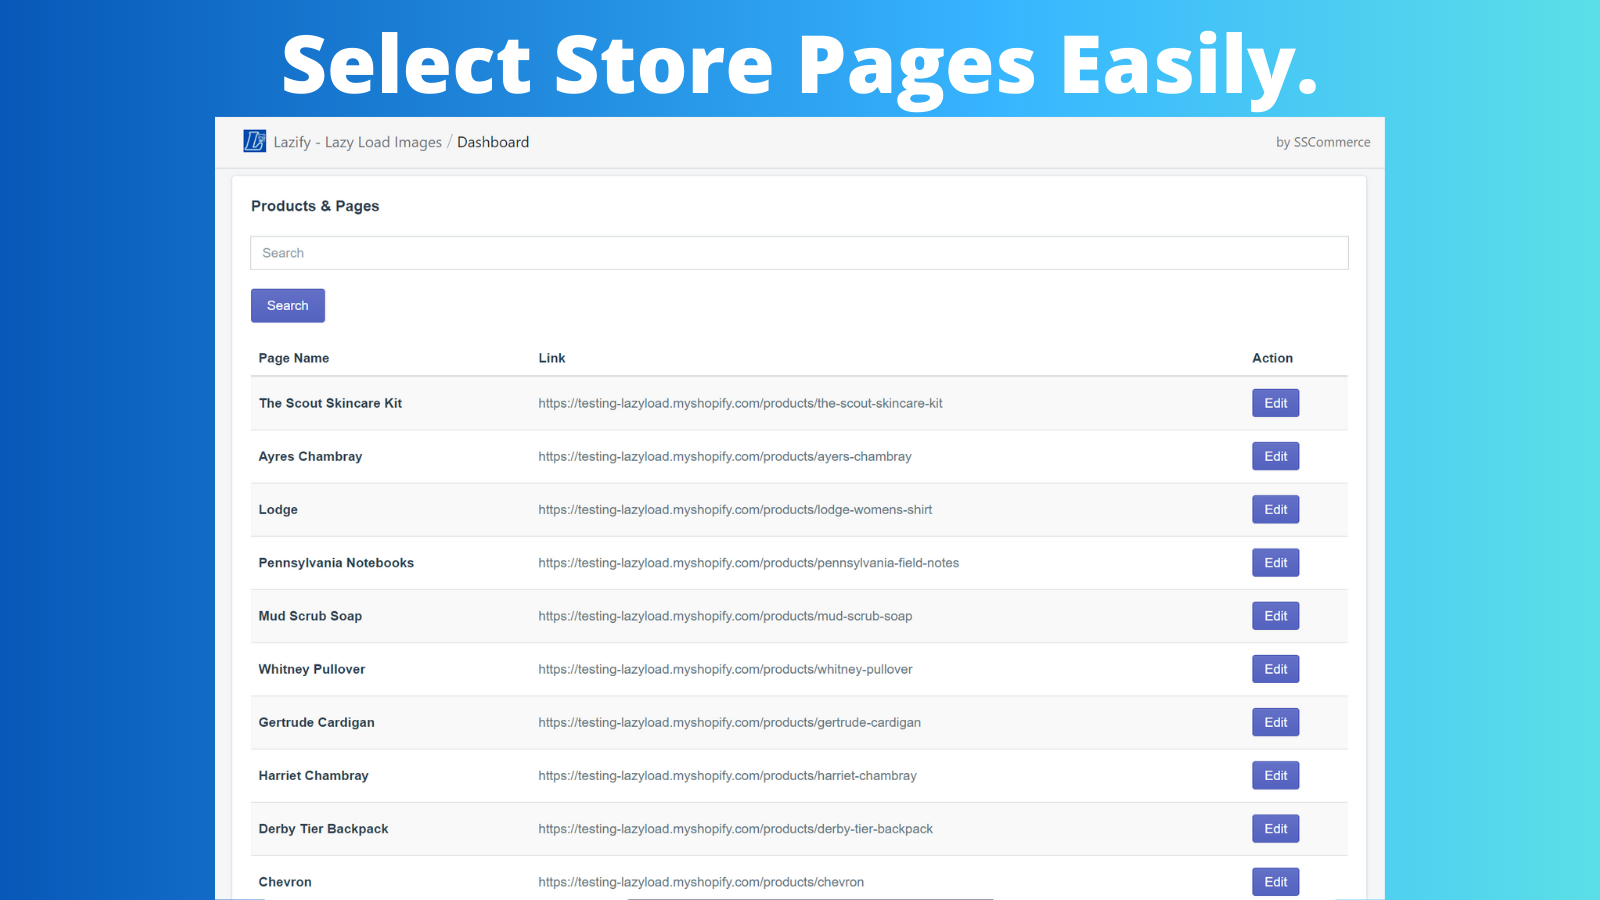 Select Store Pages Easily.